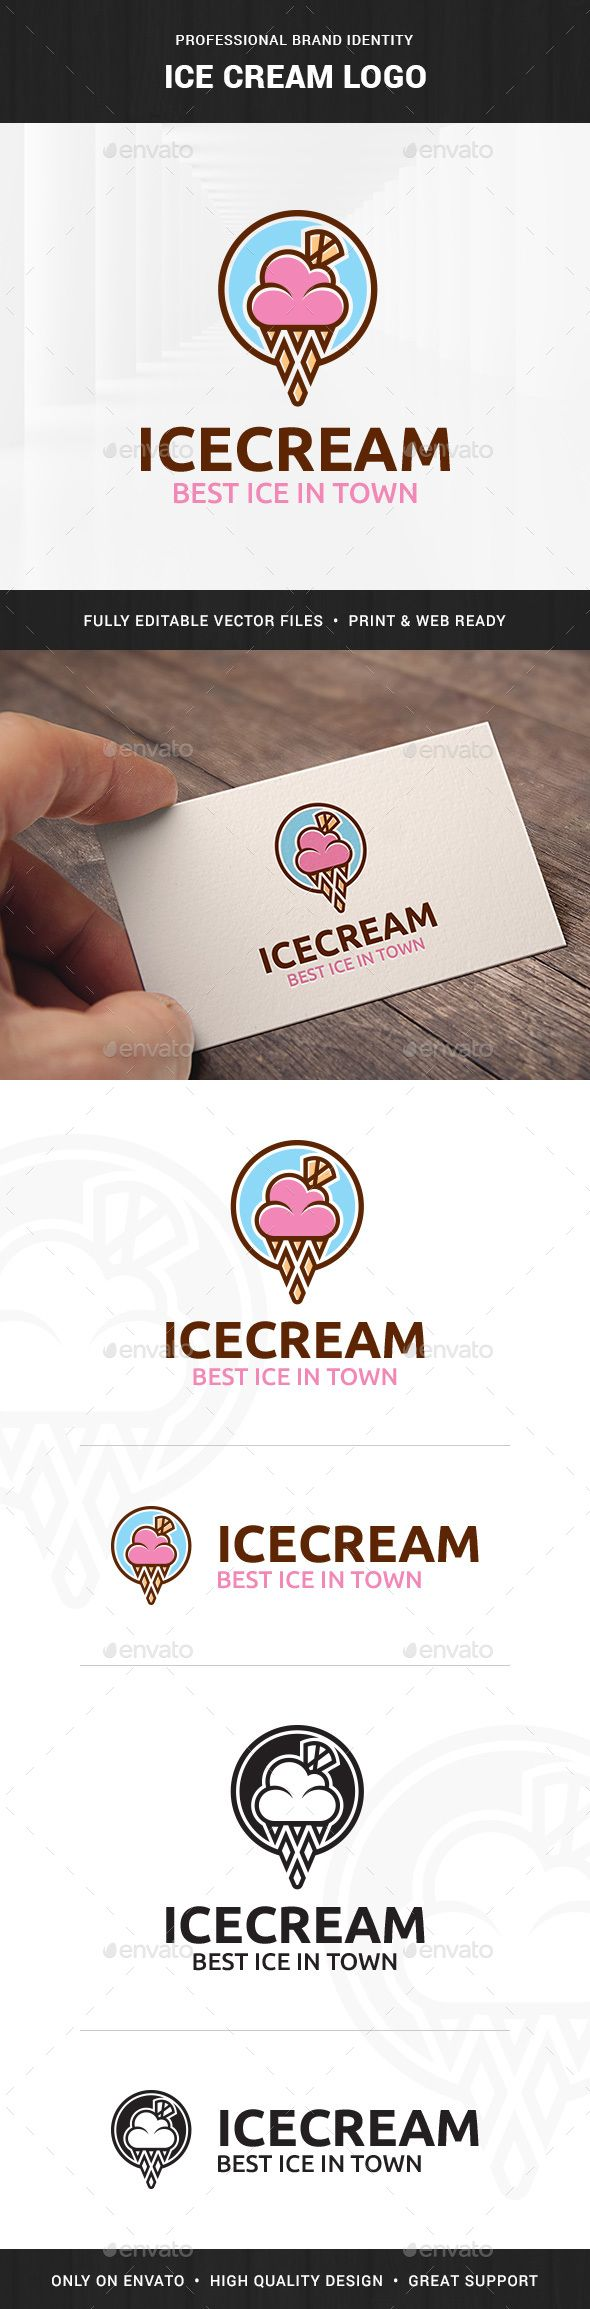 Ice Cream Logo Template — Vector EPS #vector #sweet • Available here → https://graphicriver.net/item/ice-cream-logo-template/16844876?ref=pxcr